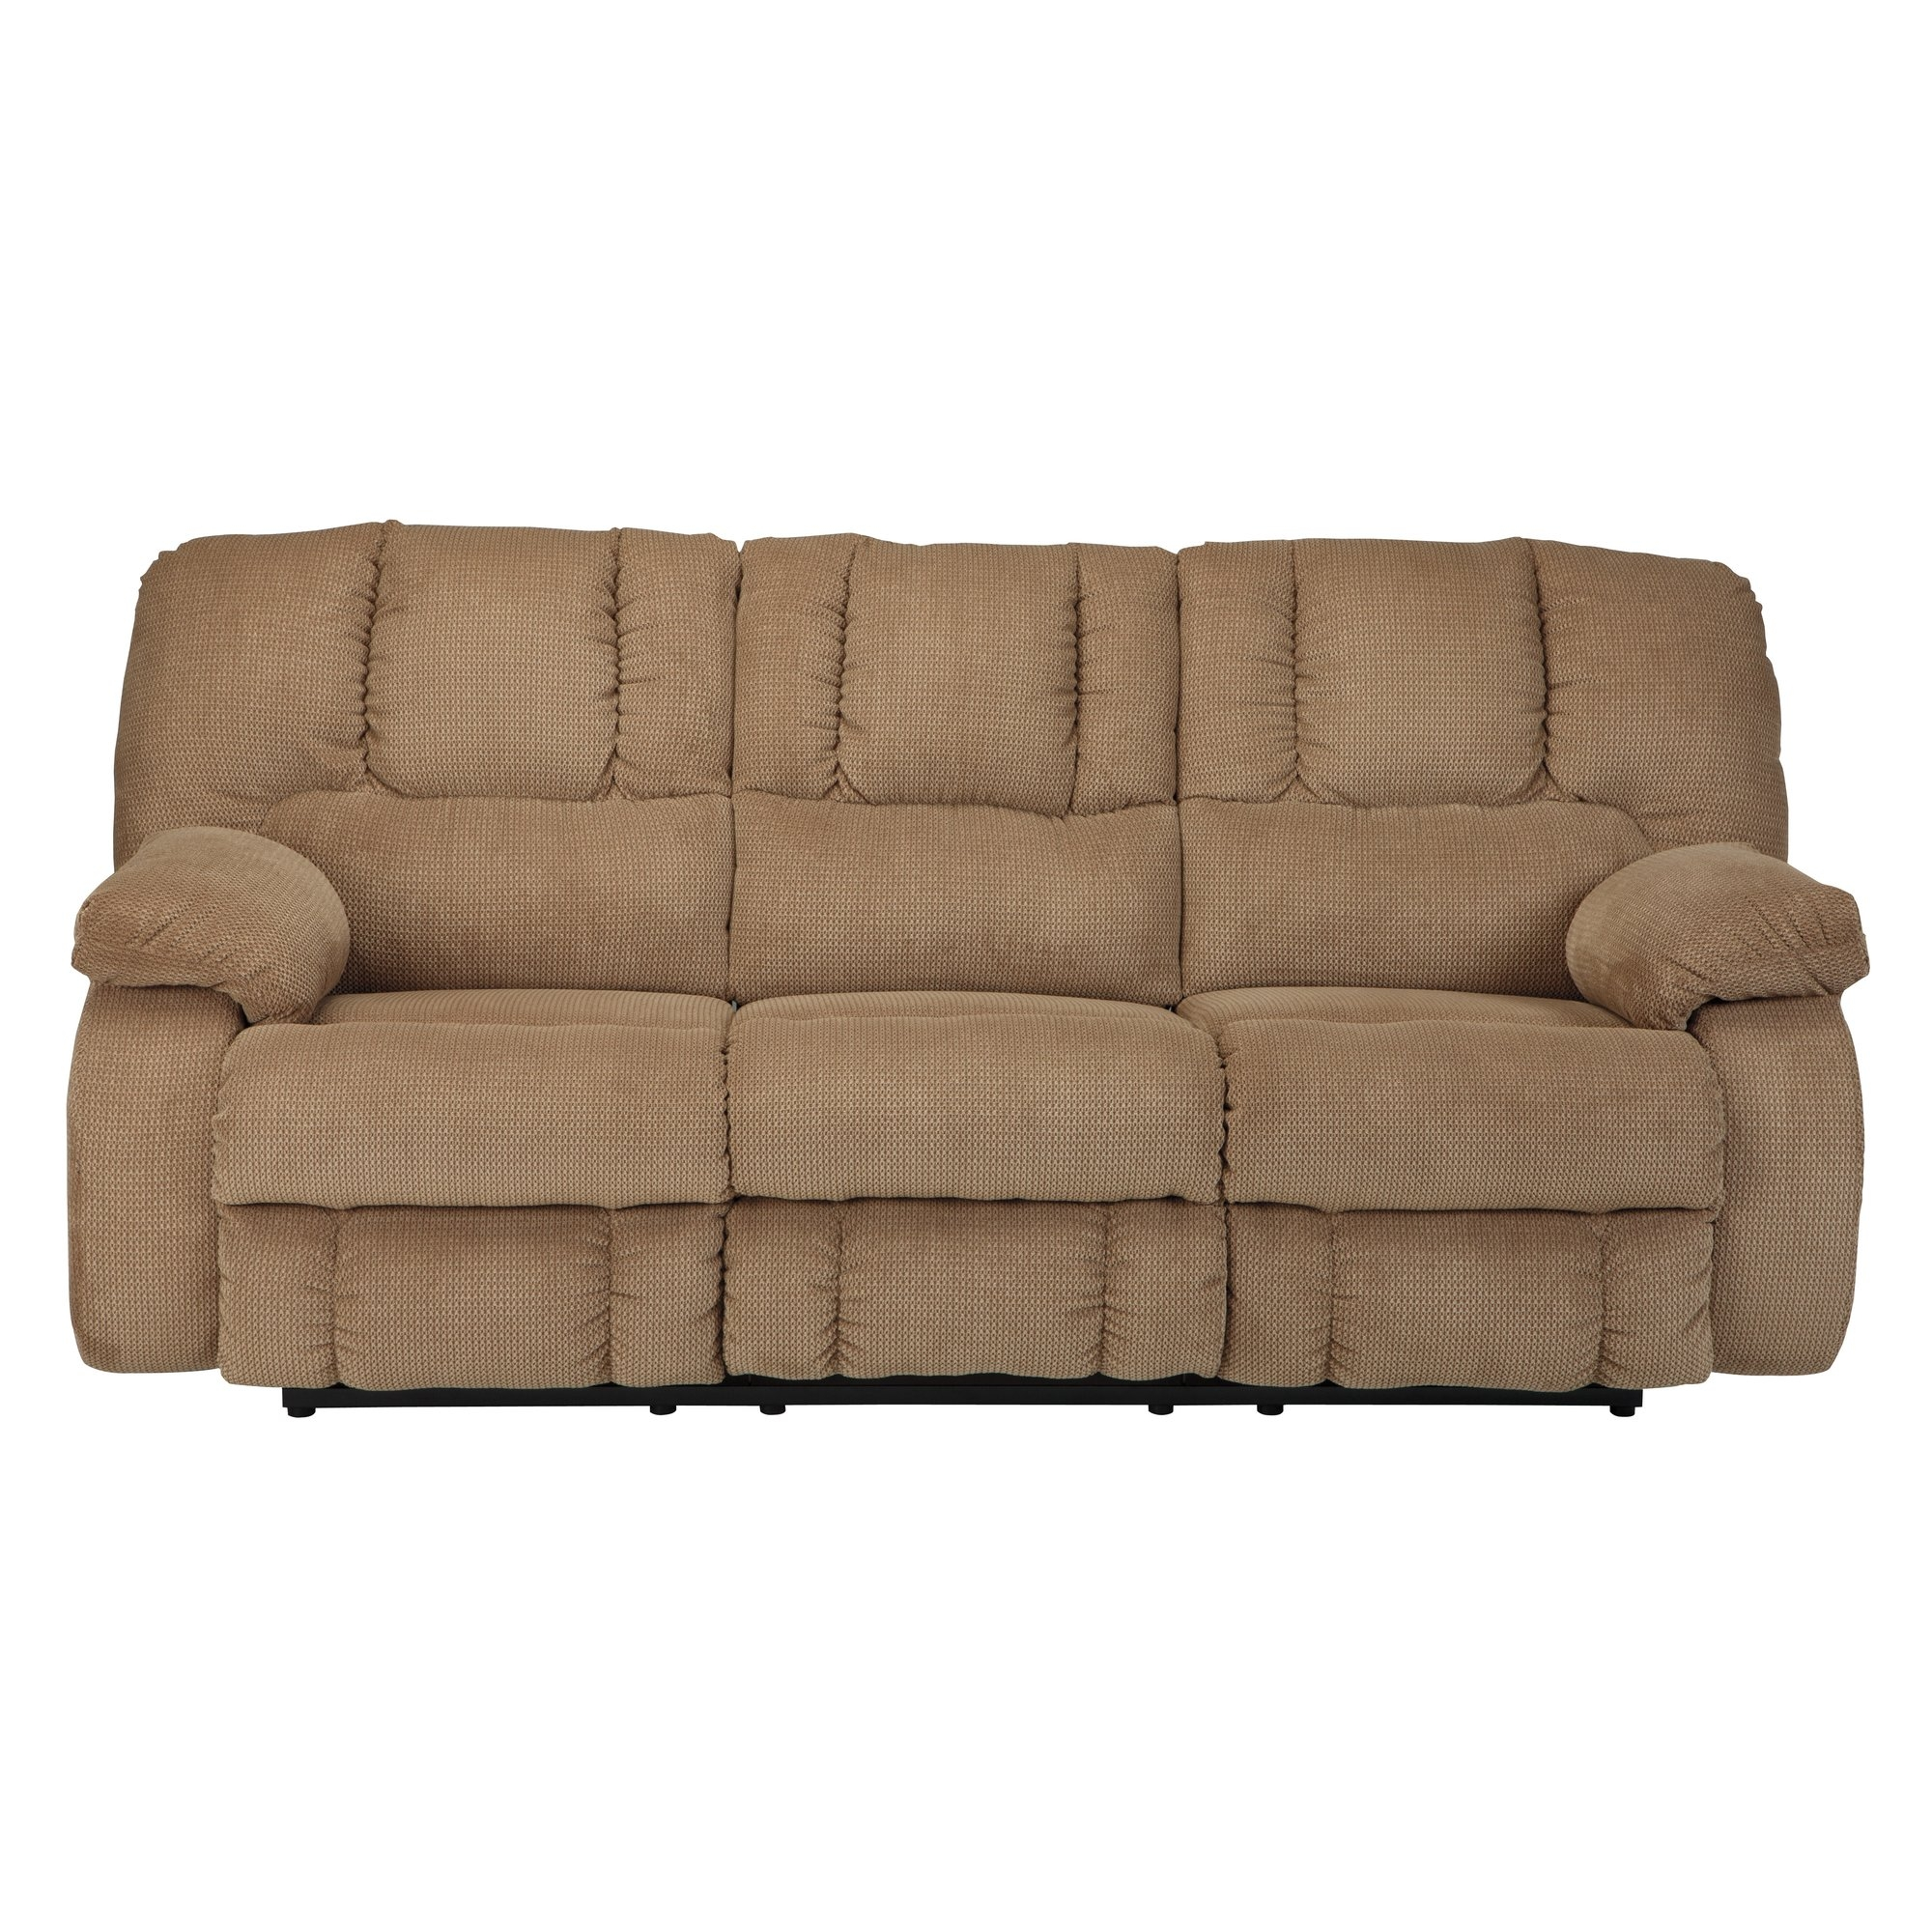 Signature Design Ashley Roan Reclining Sofa Reviews Wayfair Throughout Ashley Tufted Sofa (#9 of 12)